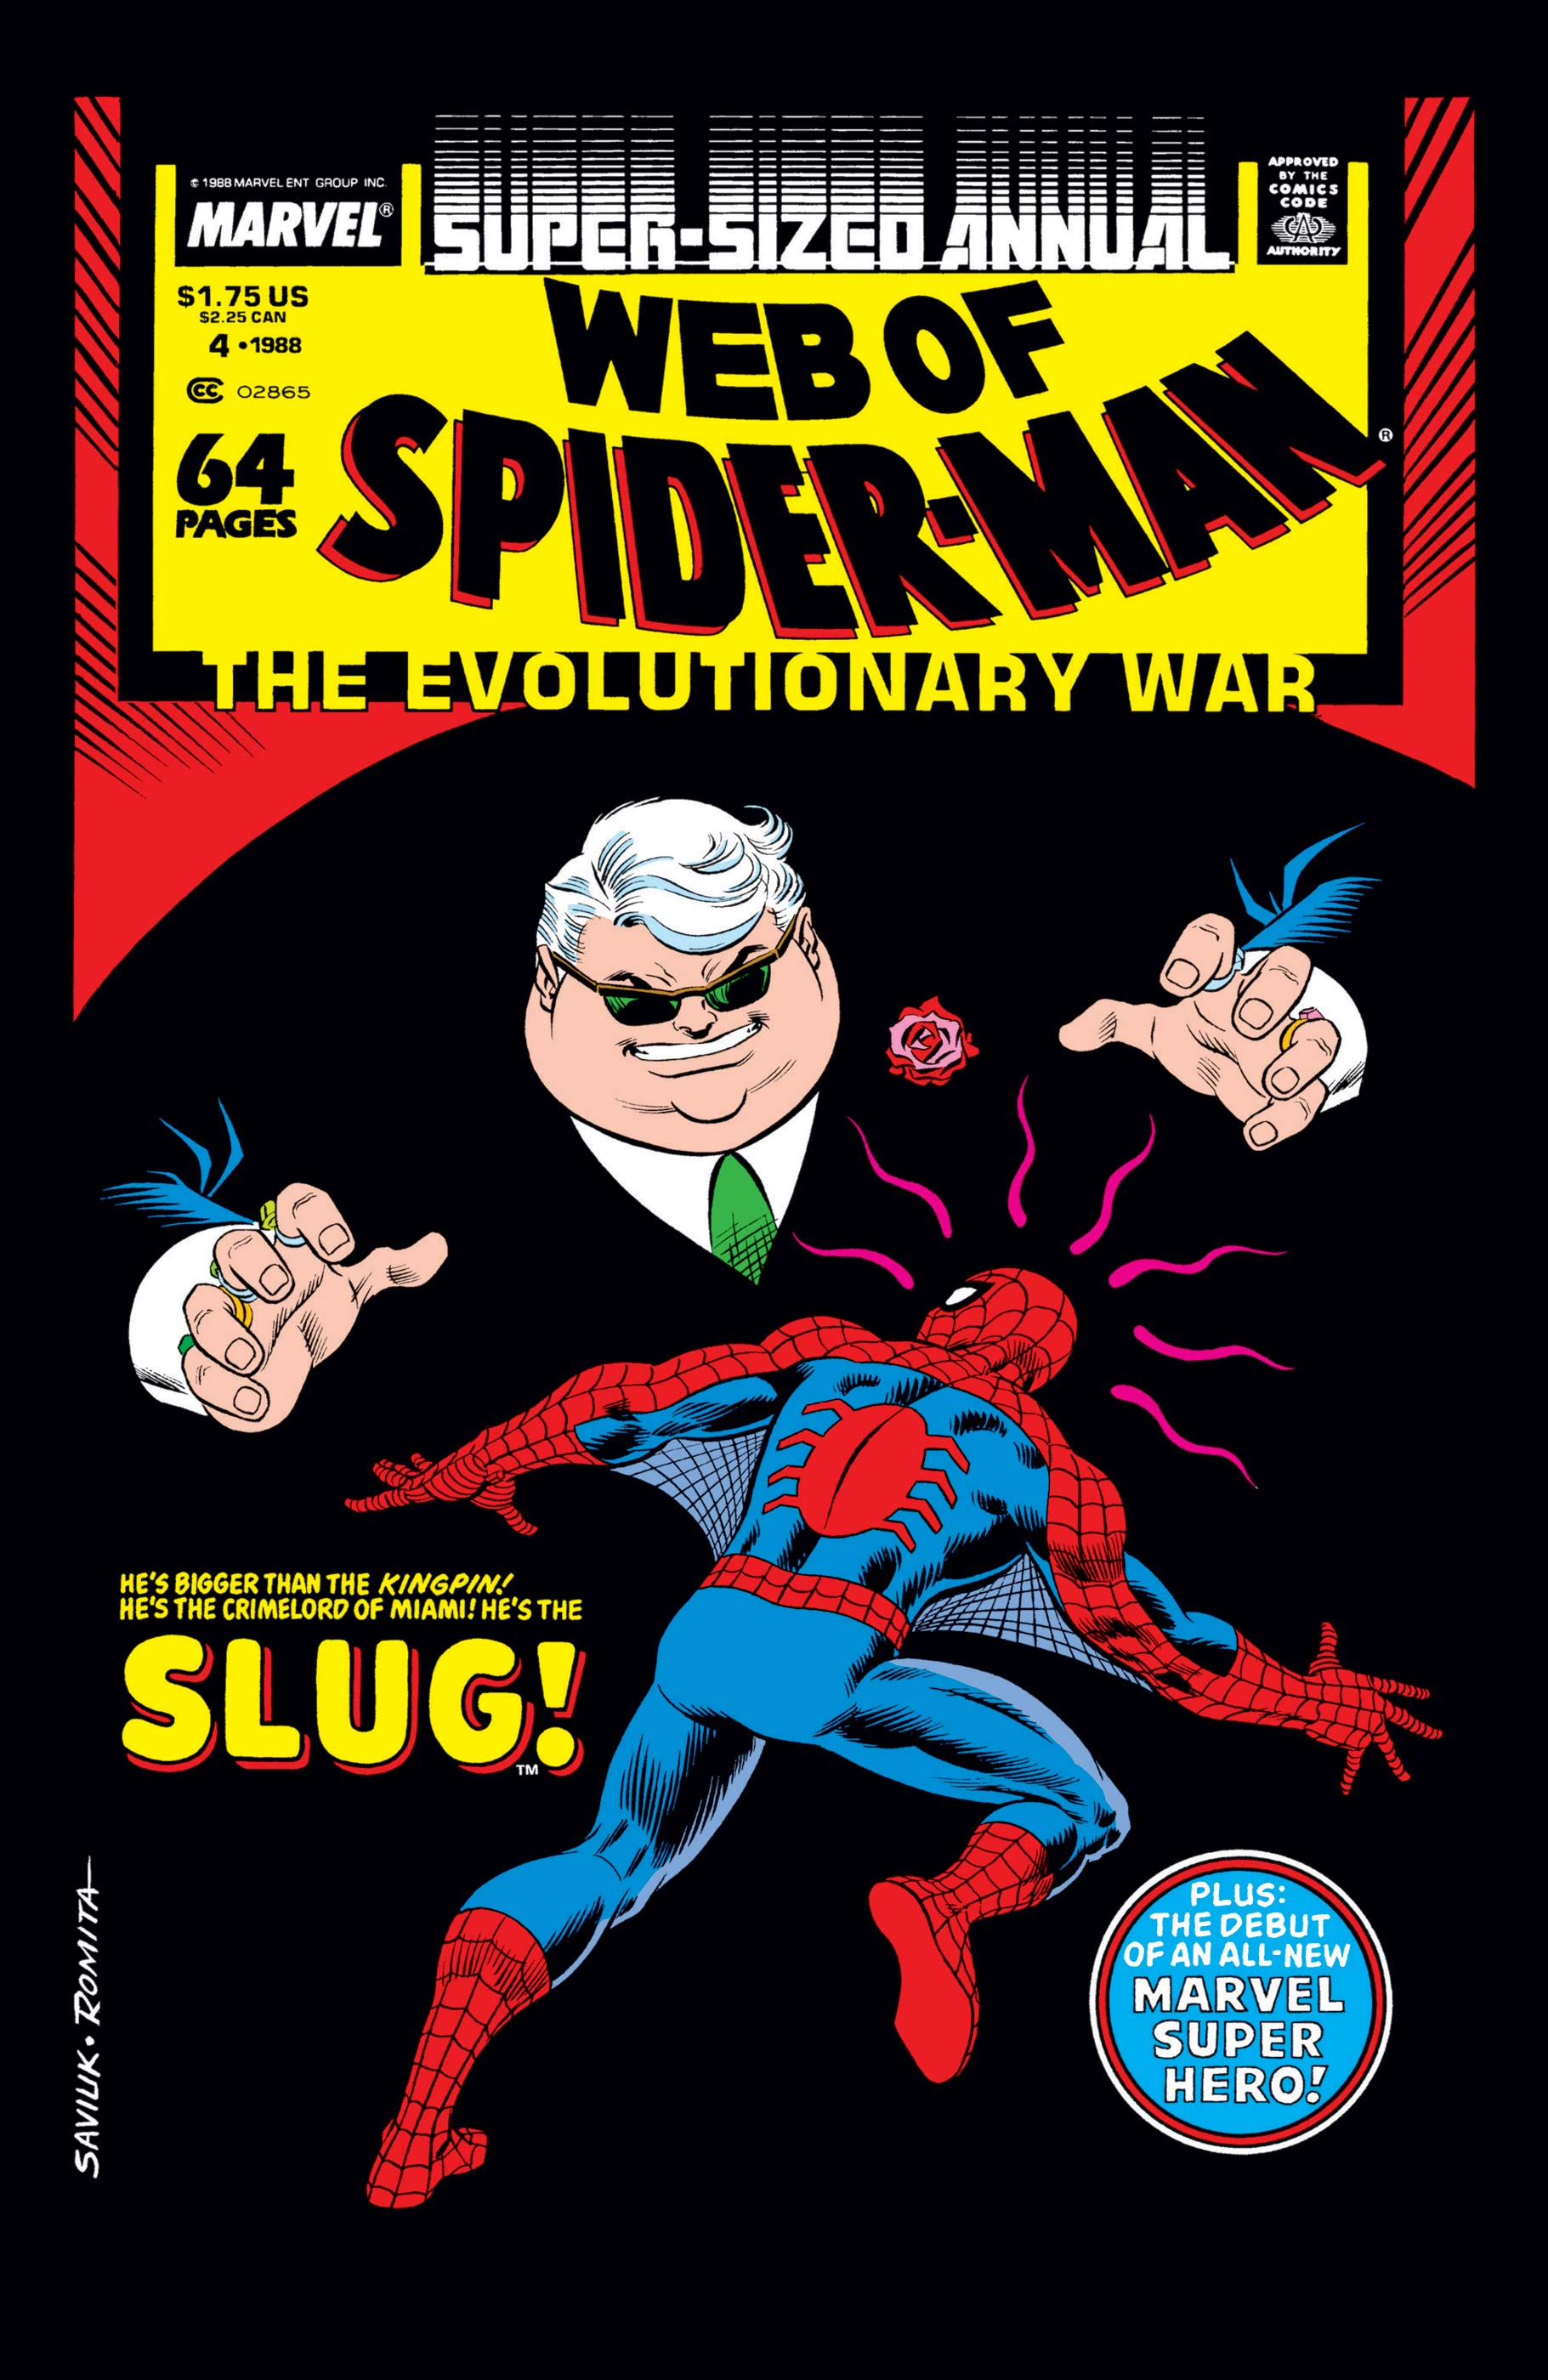 Web of Spider-Man Annual (1985) #4